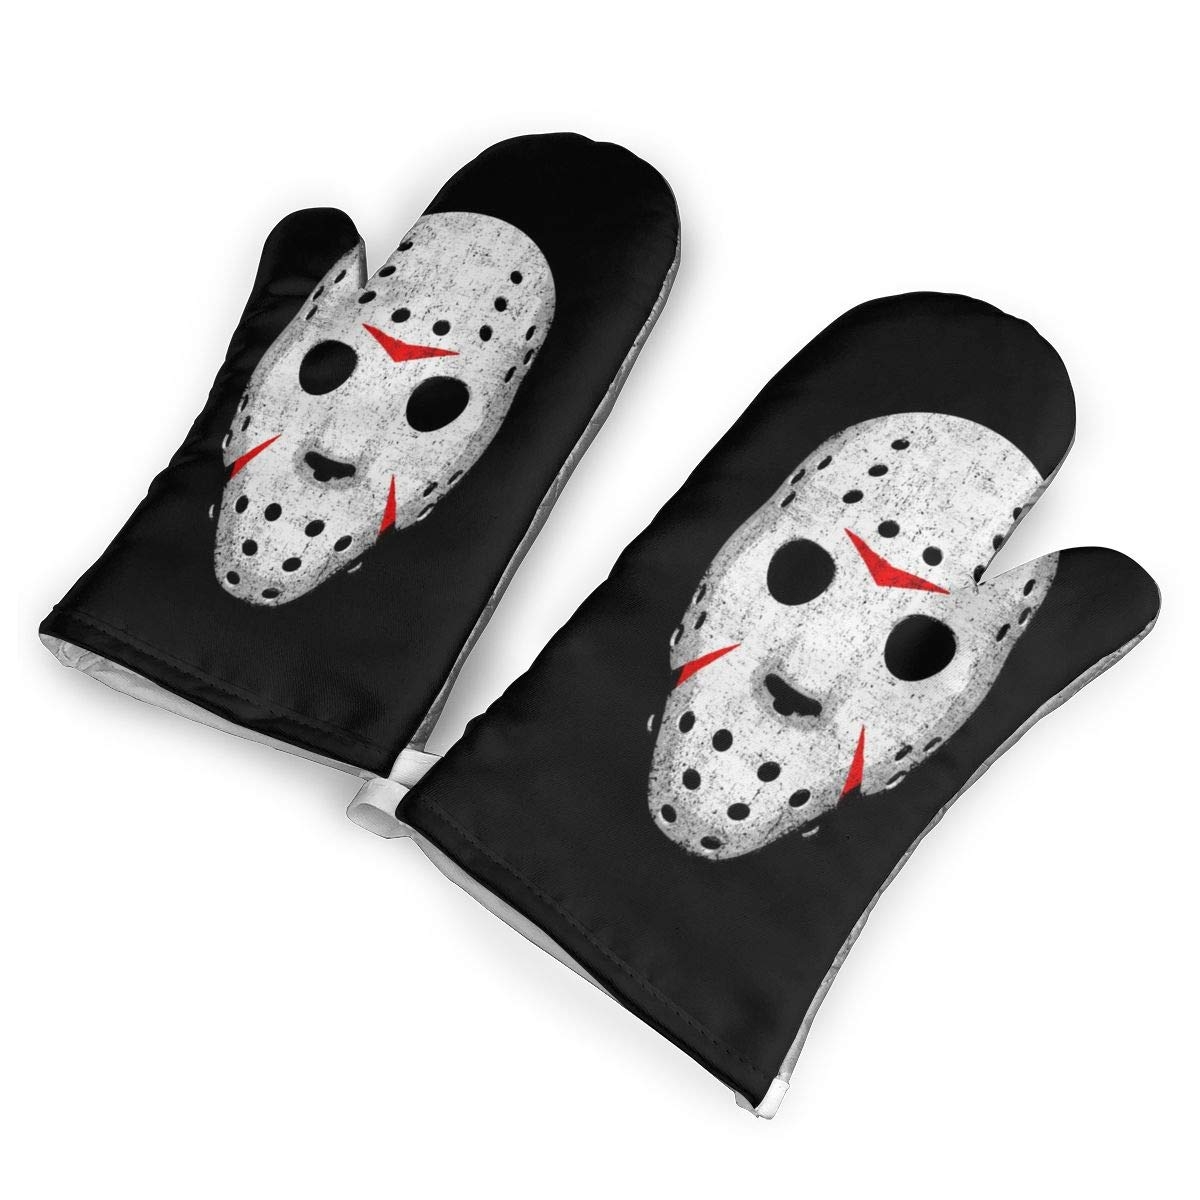 not Anti Pollution Mask Horror Oven Mitts with Polyester Fabric Printed Pattern,1 Pair of Heat Resistant Oven Gloves for Cooking,Baking,Grilling,Barbecue Potholders